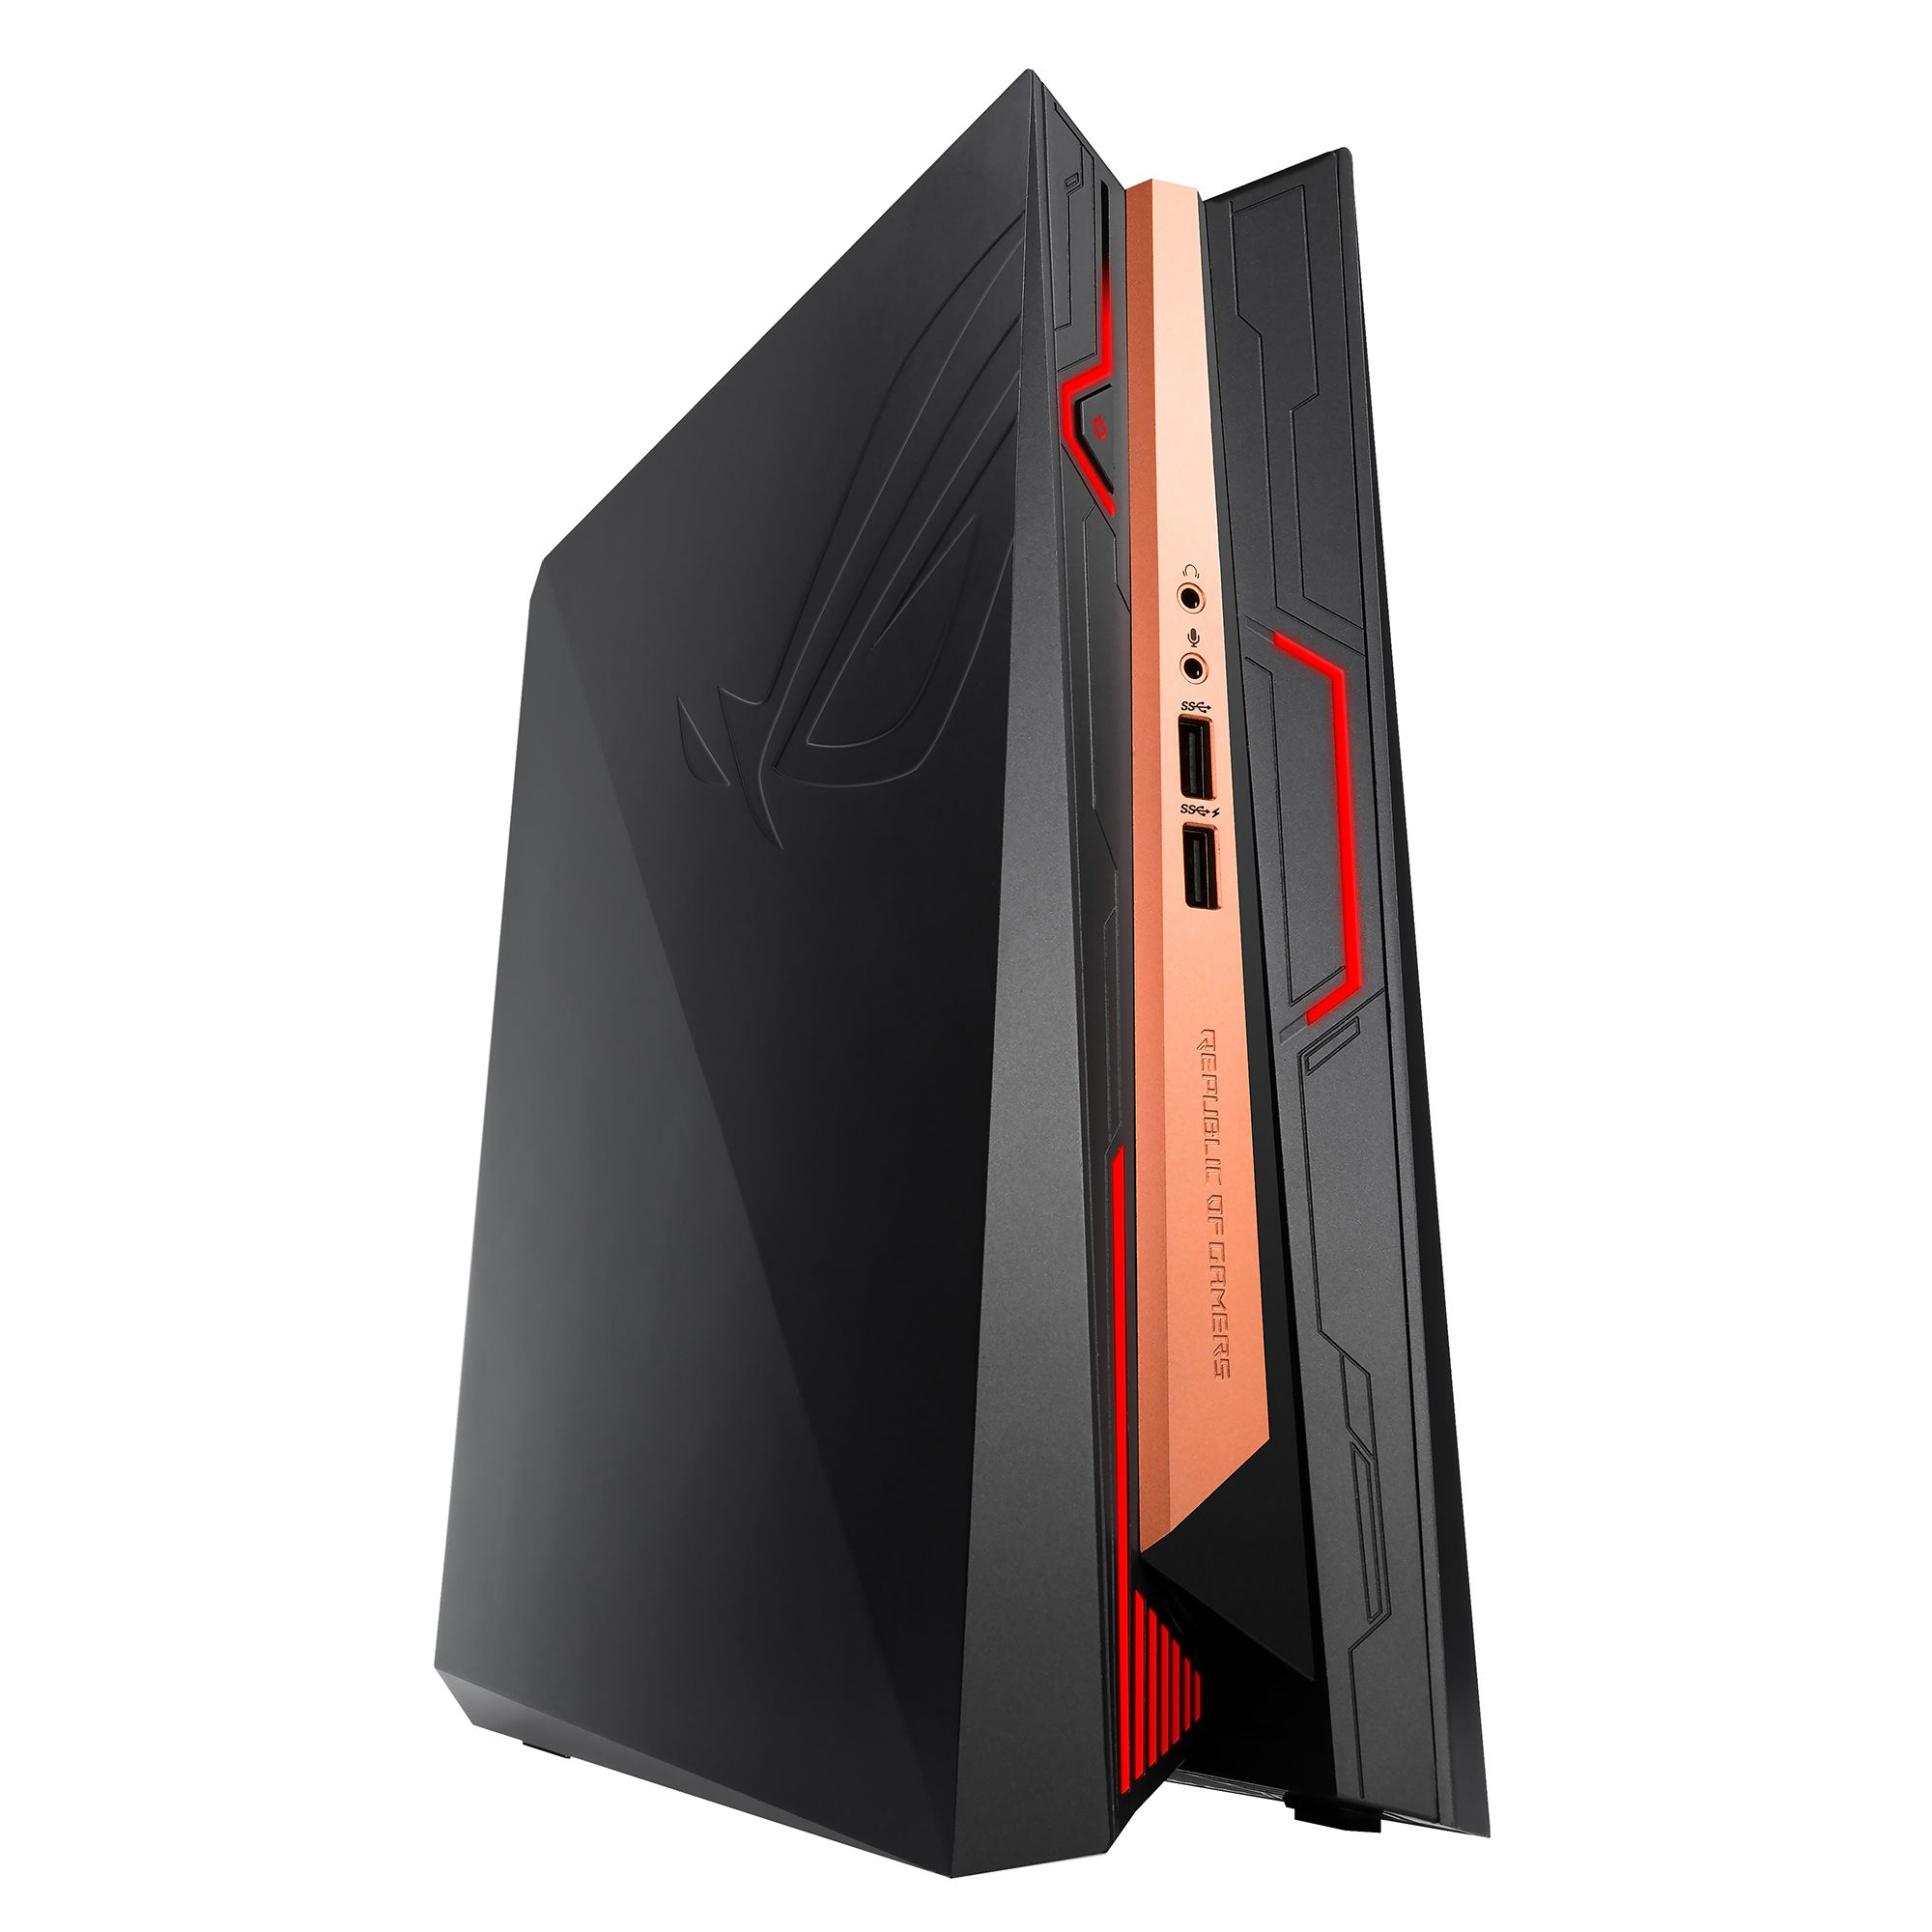 Sistem Brand Asus ROG GR8 II Intel Core i7-7700 GTX 1060-6GB RAM 16GB HDD 1TB + SSD 256GB Windows 10 Home